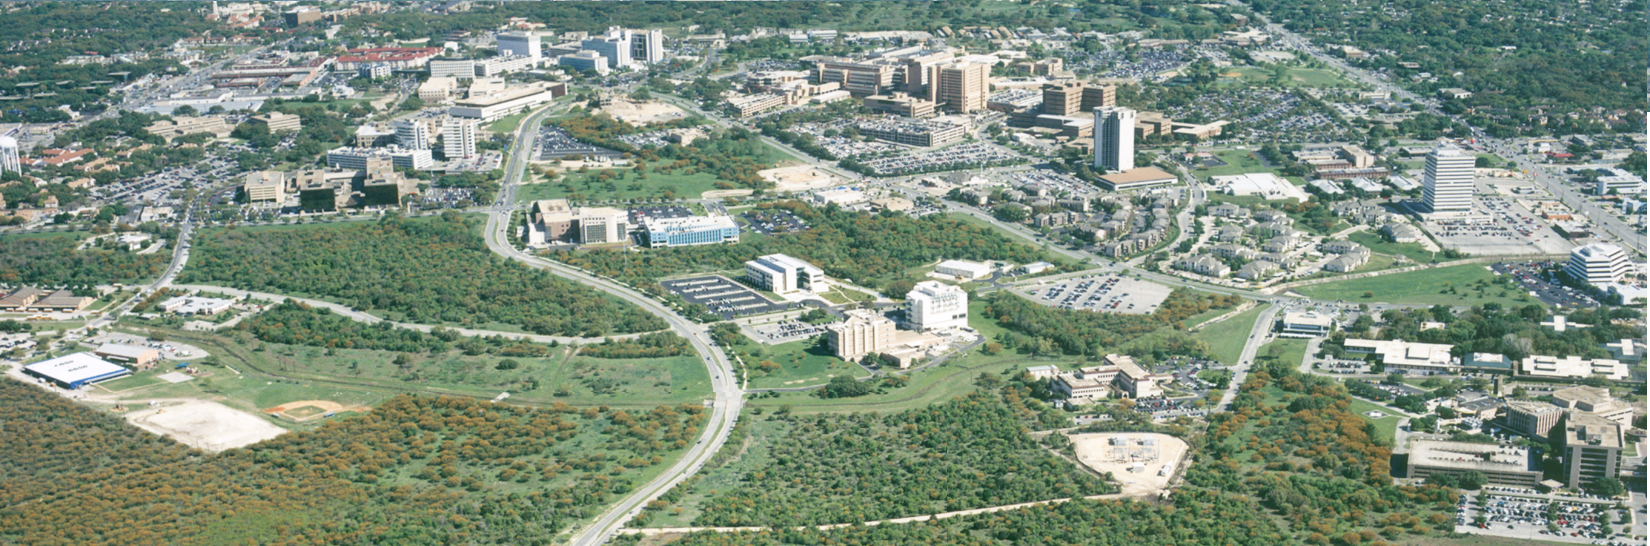 File South Texas Medical Center Aerial View Png Wikipedia